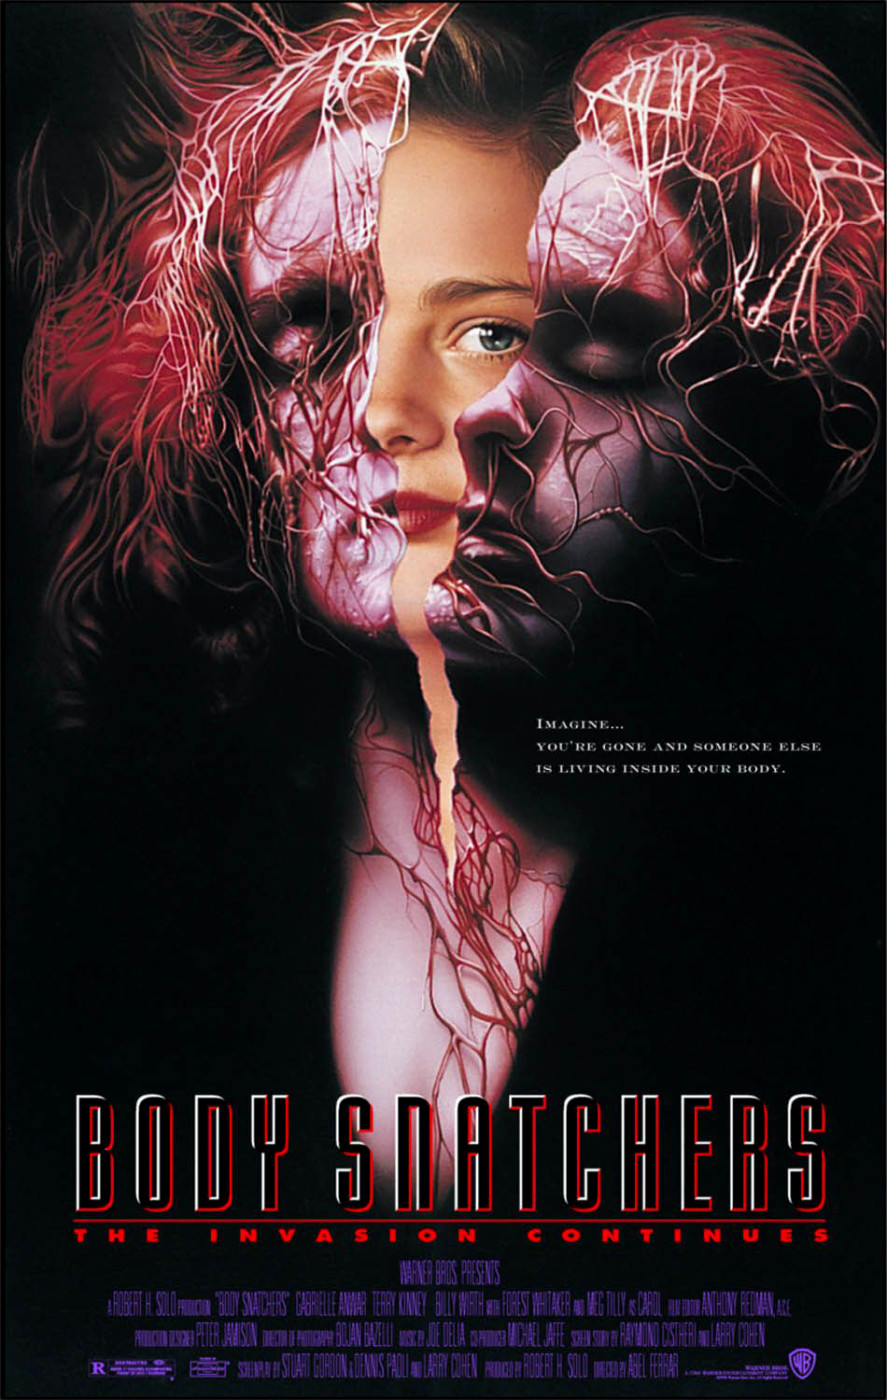 body_snatchers_1993_poster-887x1400.jpg